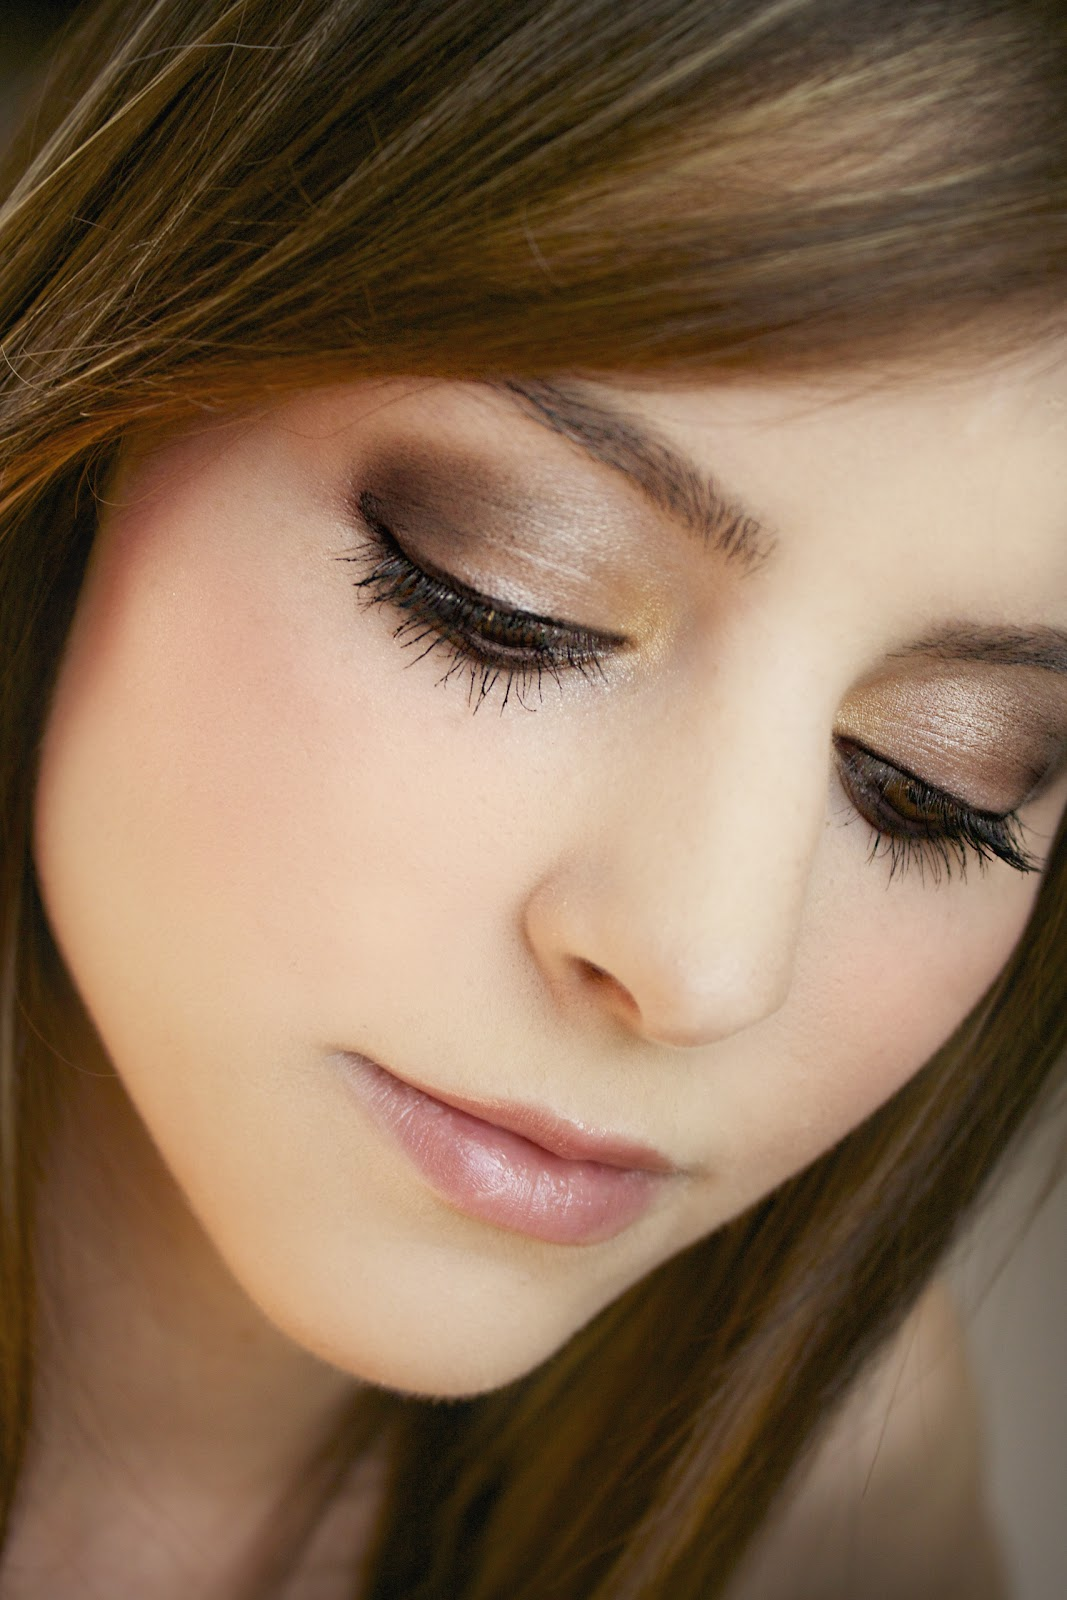 Smokey Eyeshadow Tutorial: C A I L E Y D A W N: MAKEUP TUTORIAL: EVERYDAY SMOKEY NEUTRALS